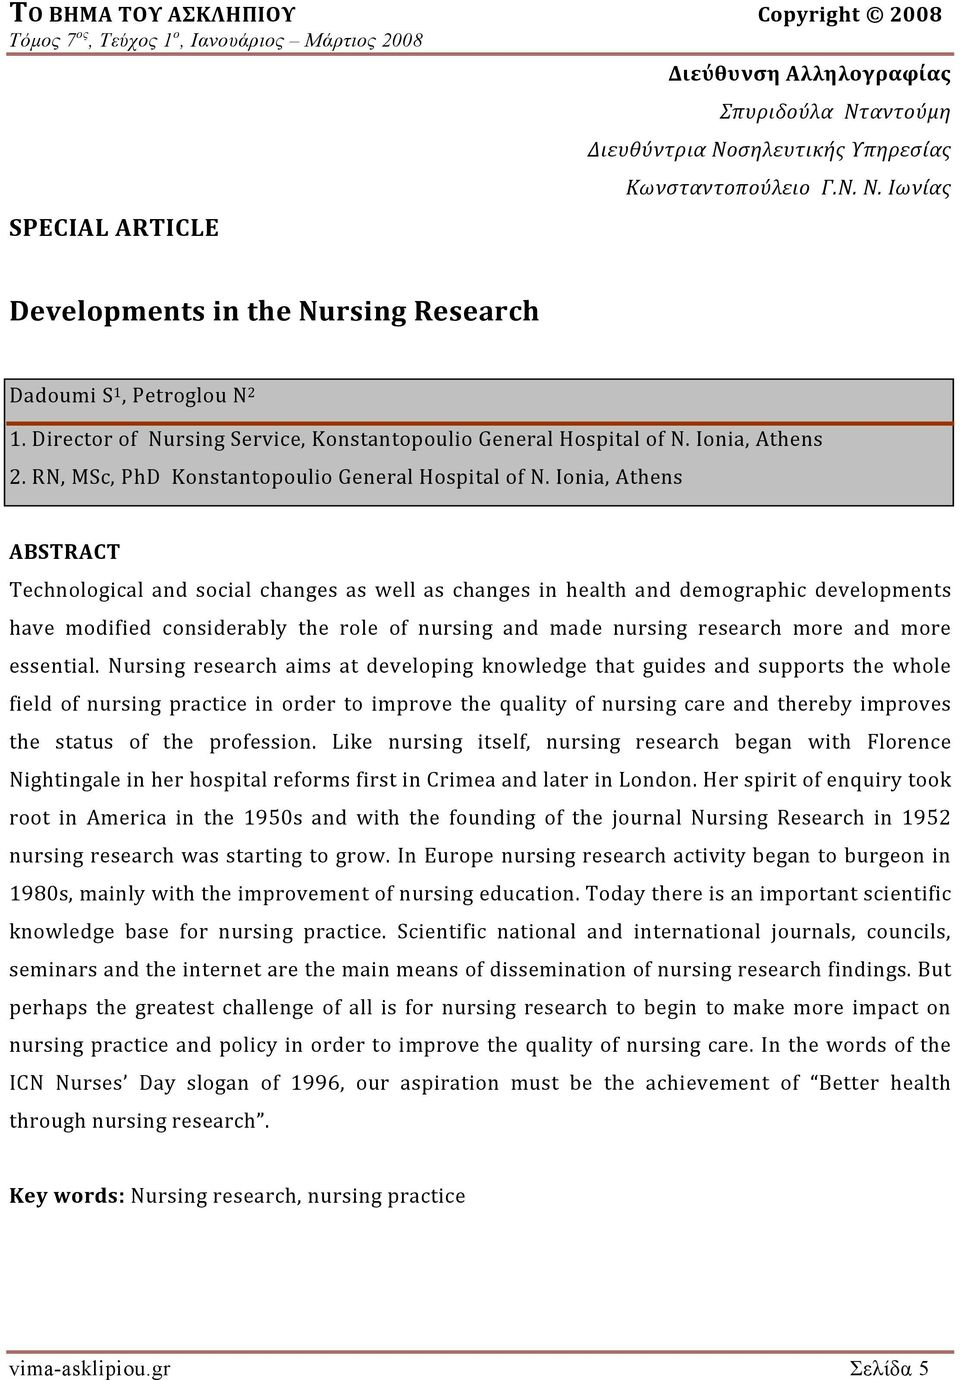 Ionia, Athens ABSTRACT Technological and social changes as well as changes in health and demographic developments have modified considerably the role of nursing and made nursing research more and